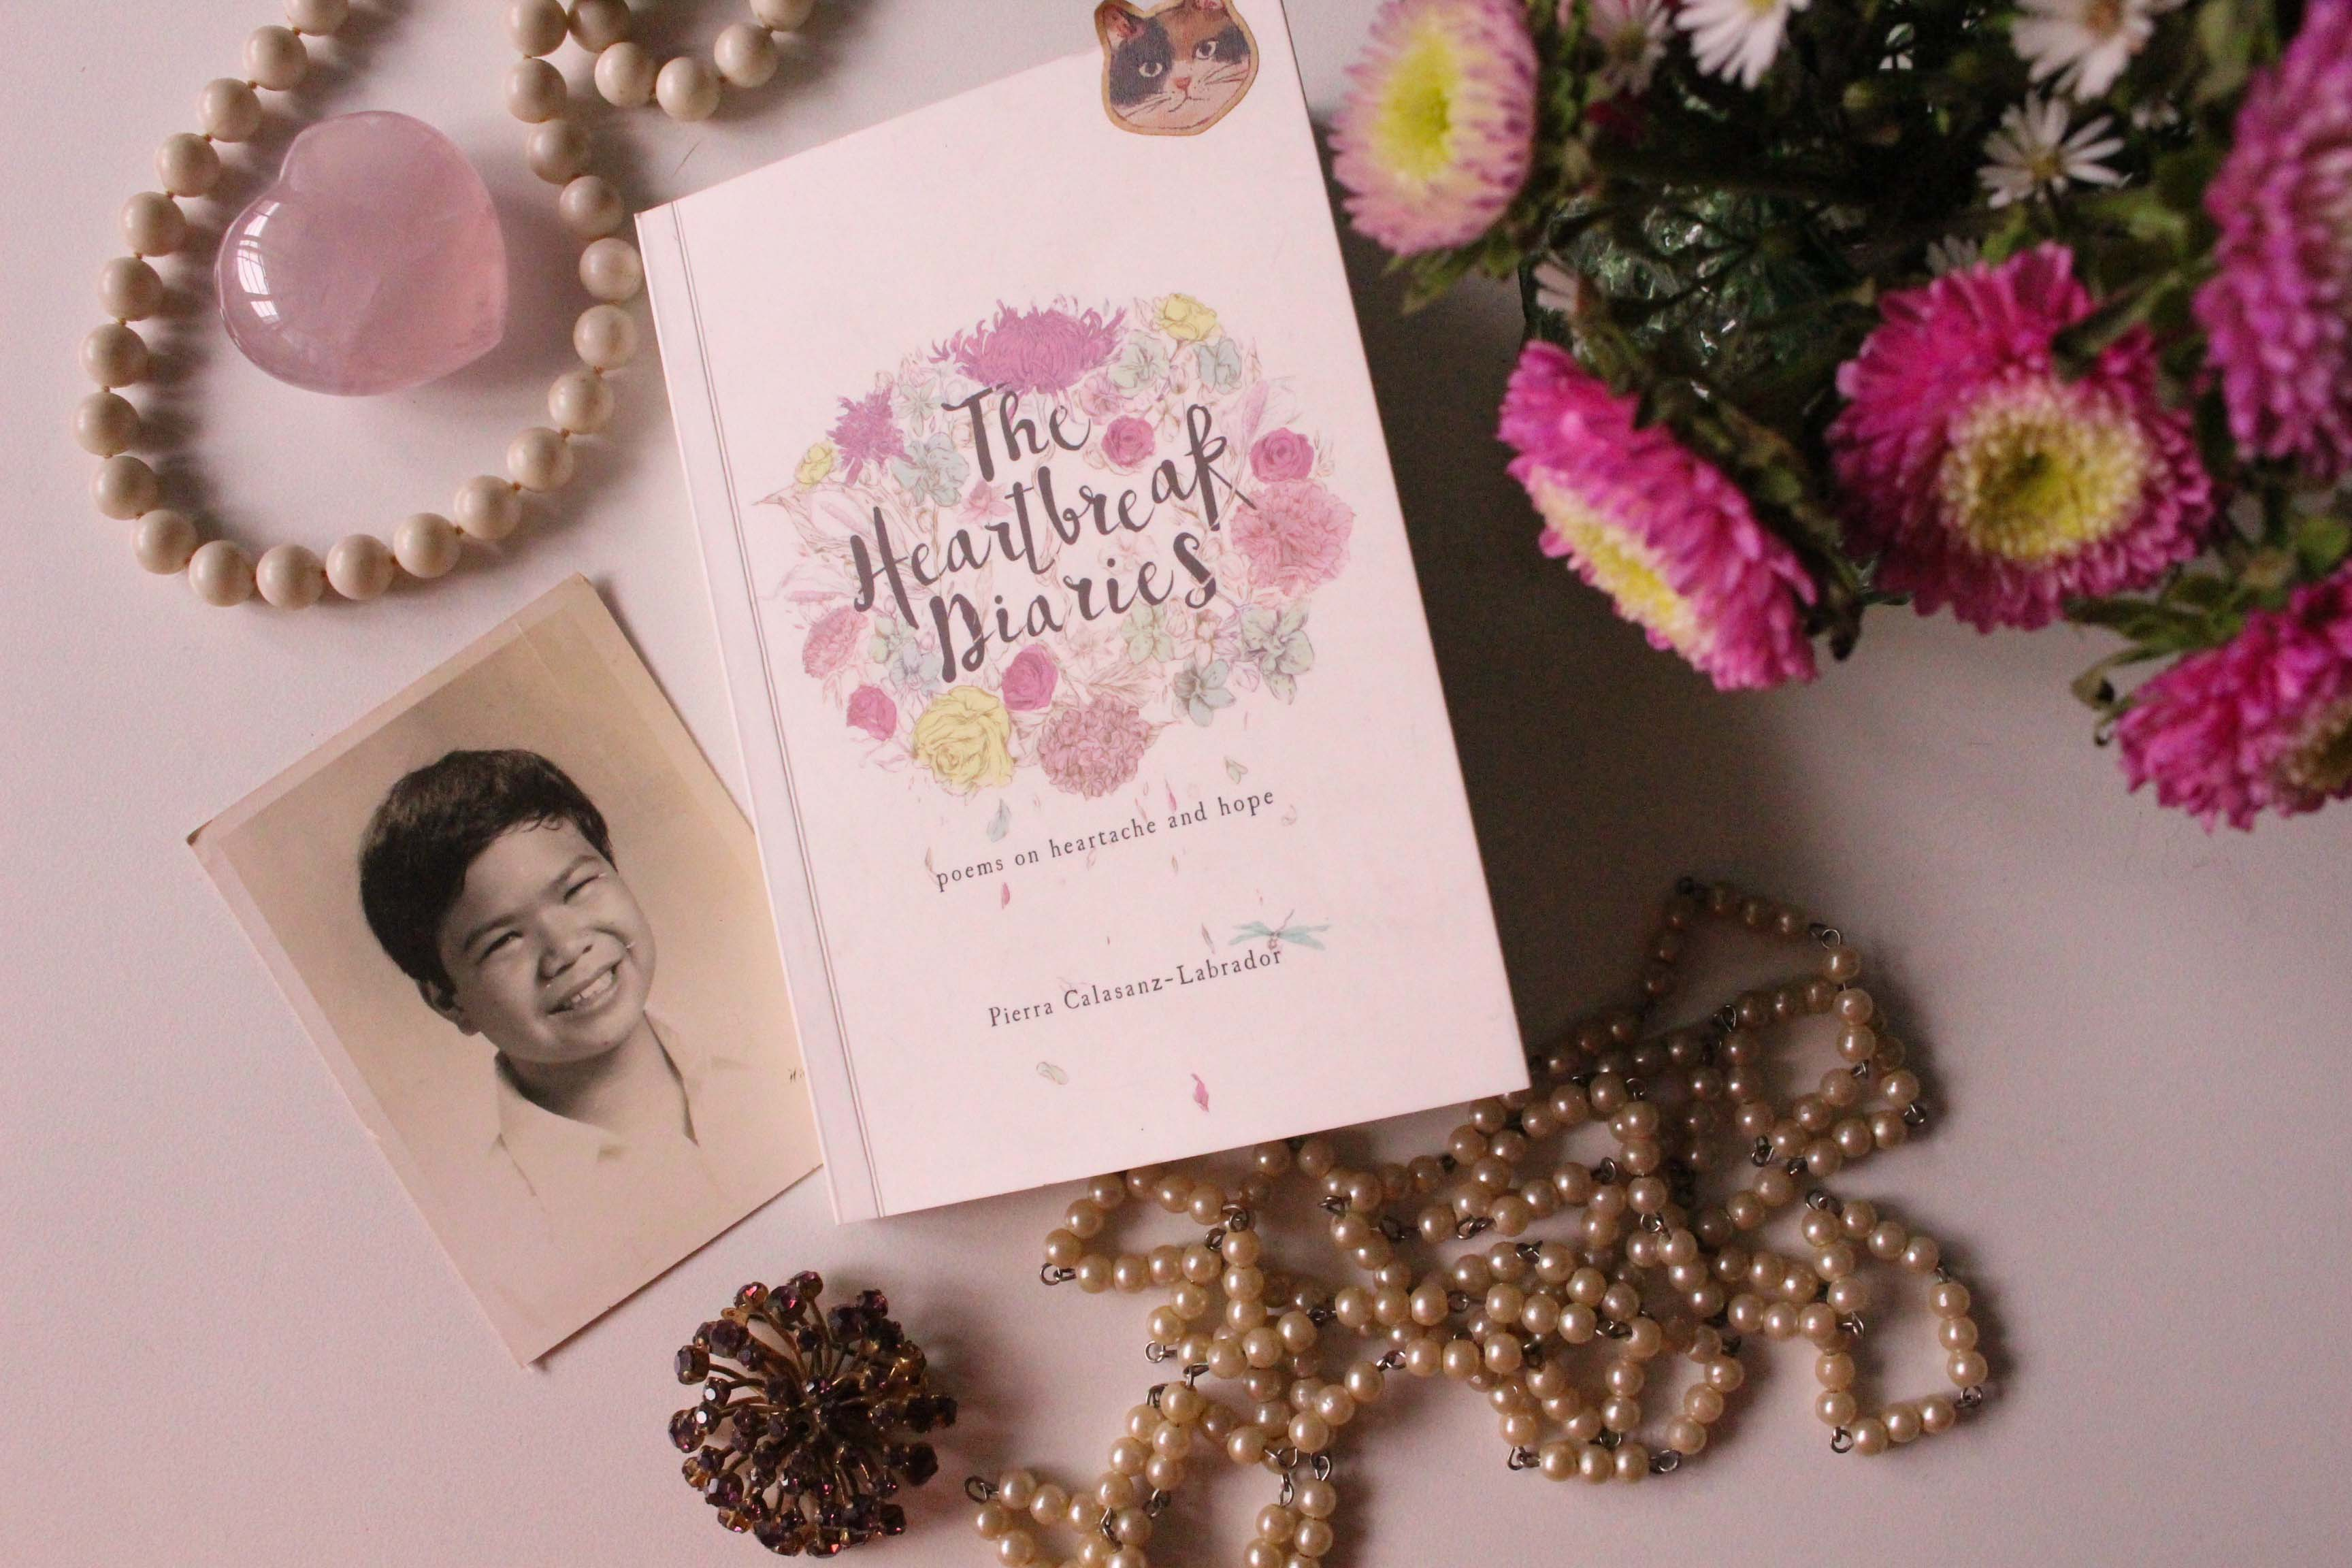 Her first self-published book, The Heartbreak Diaries, are poems that delve into